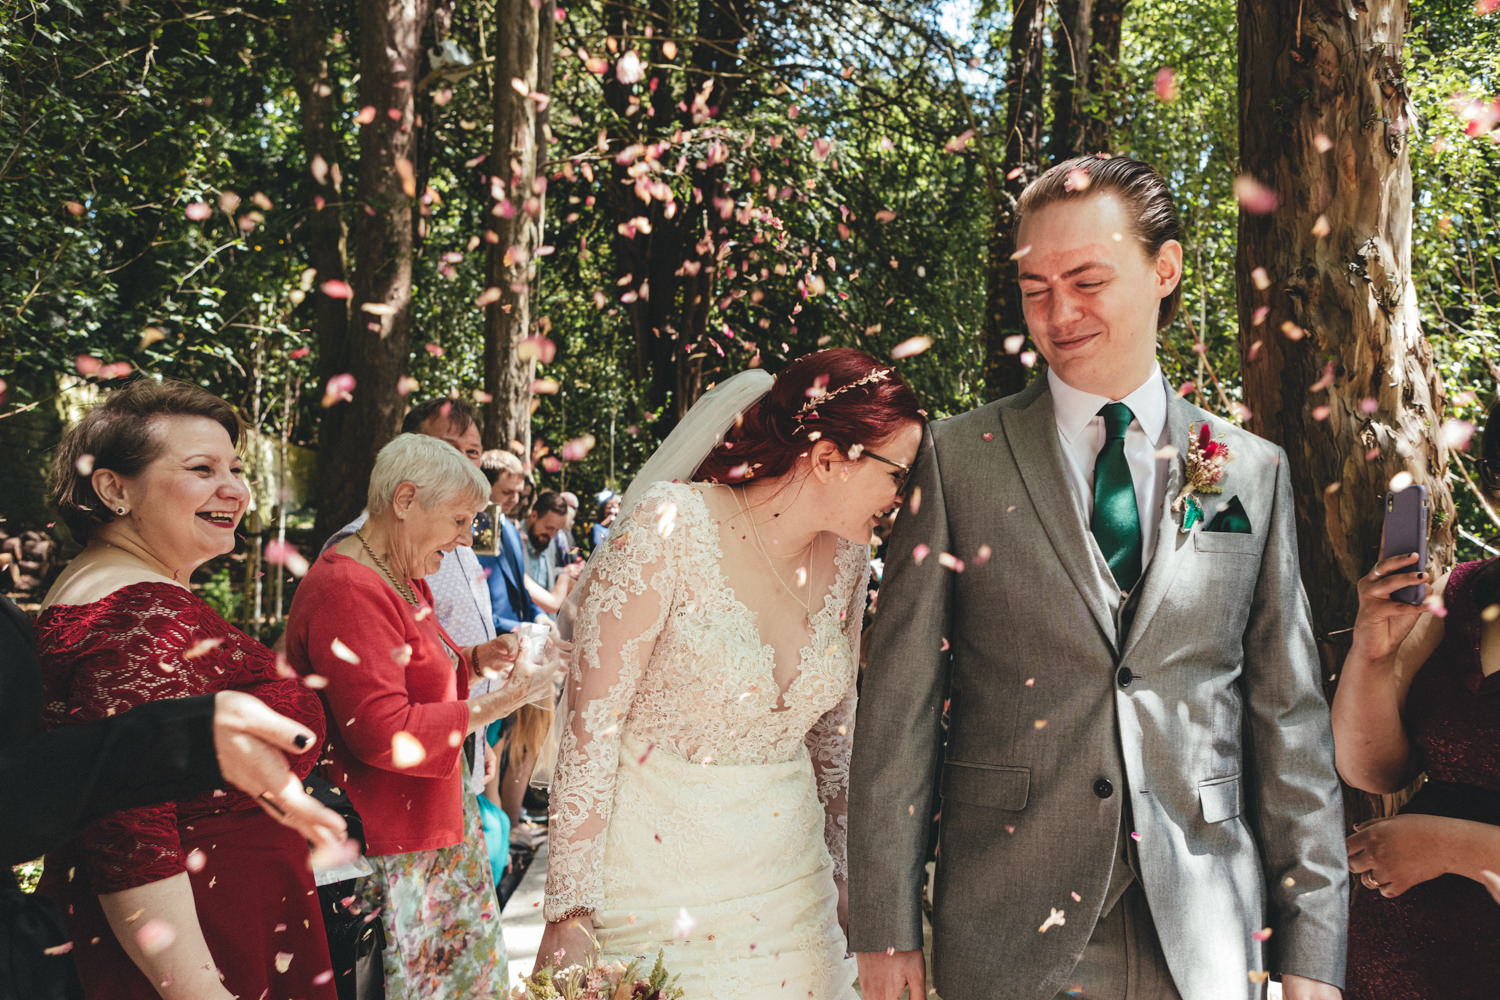 confetti, bride & groom, woodland walkway, woodland wedding, alternative wedding, Quirky Woodland Wedding Photography